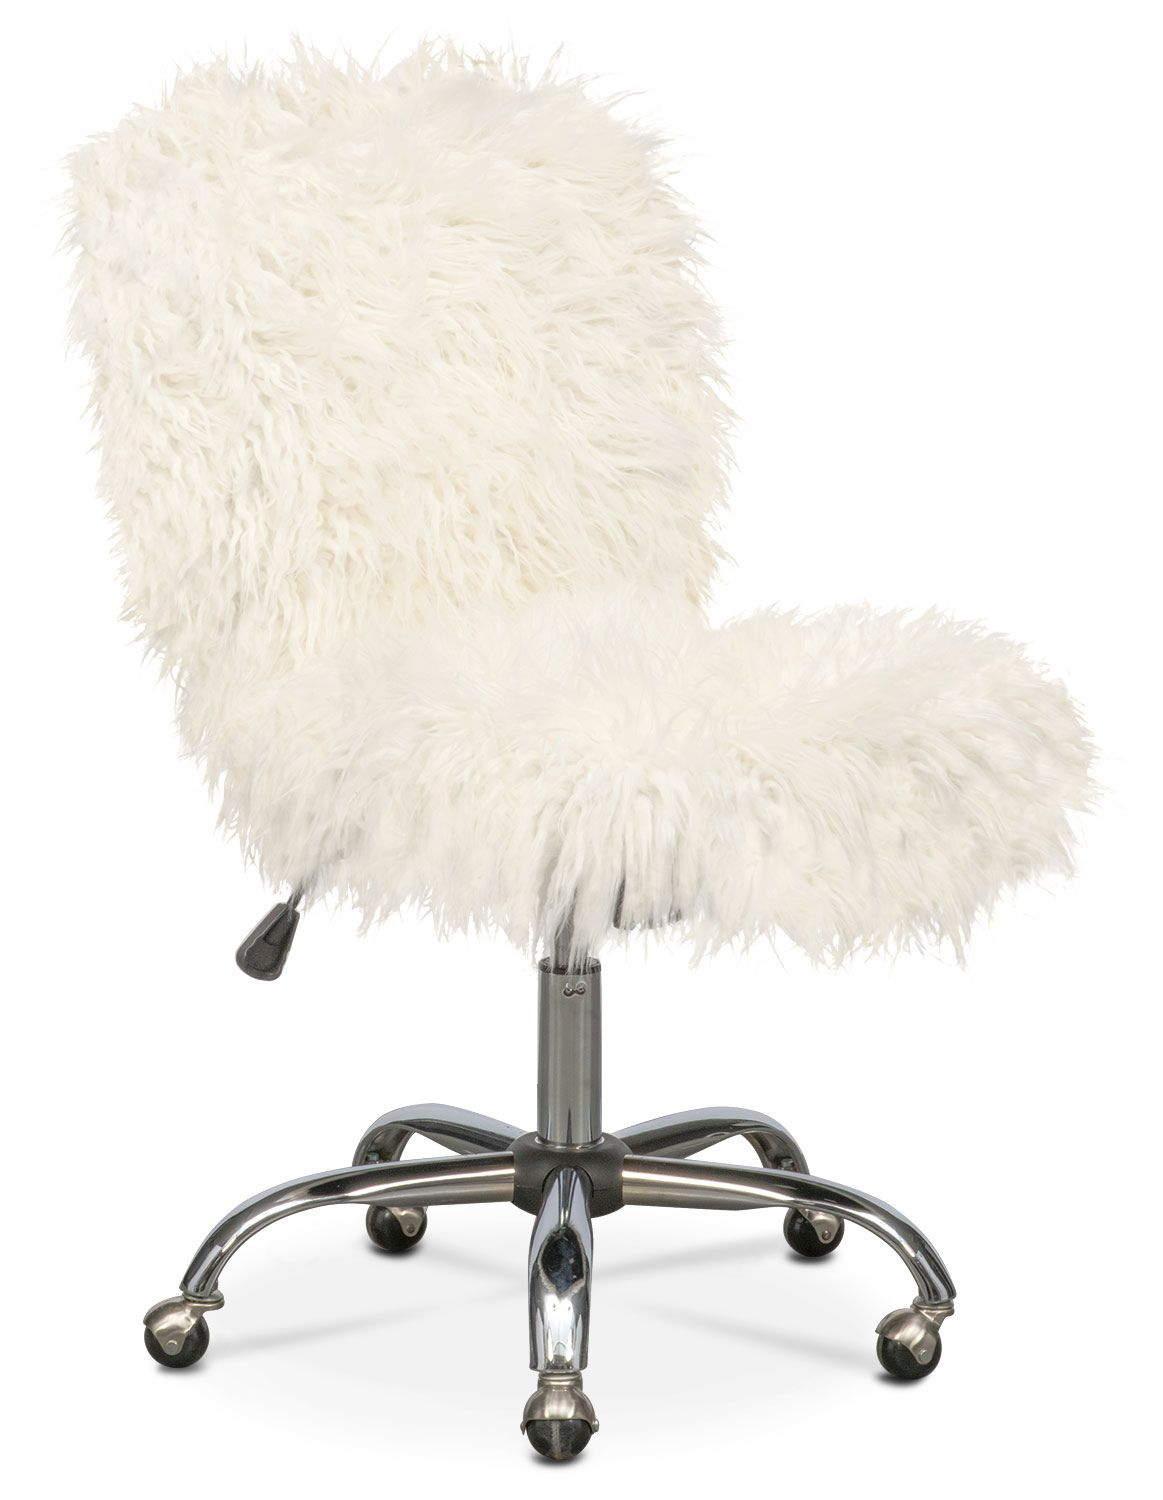 White Fuzzy Desk Chair Wall Decor Ideas For Desk Check More At Http Www Sewcraftyjenn Com White Fuzzy Desk Ch Sillas De Escritorio Mobiliario Urbano Sillas